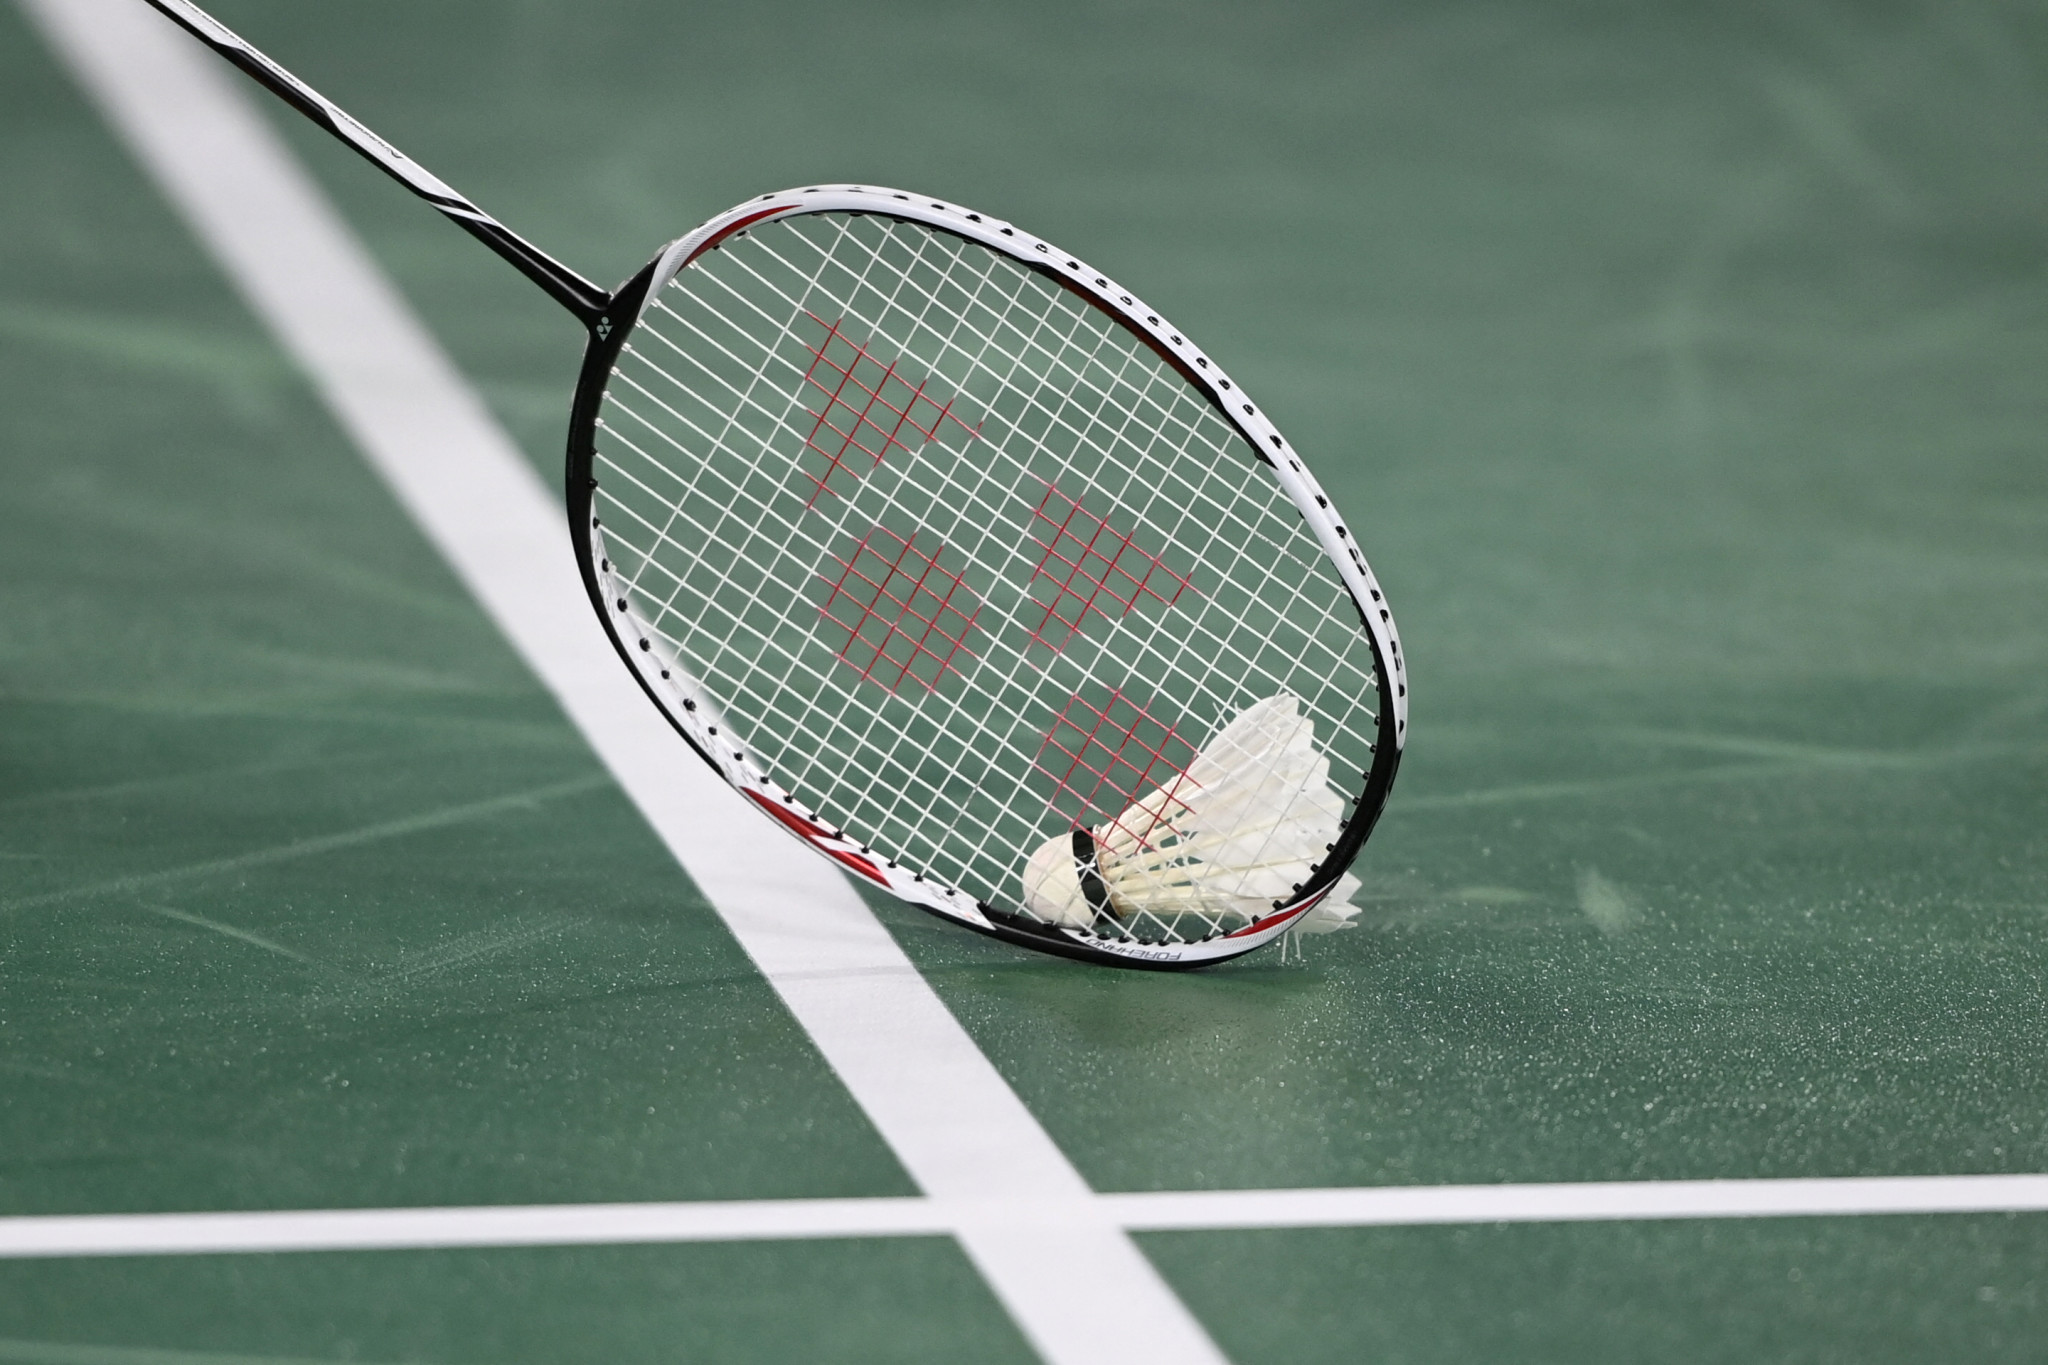 Taipei Open latest BWF World Tour event cancelled over COVID-19